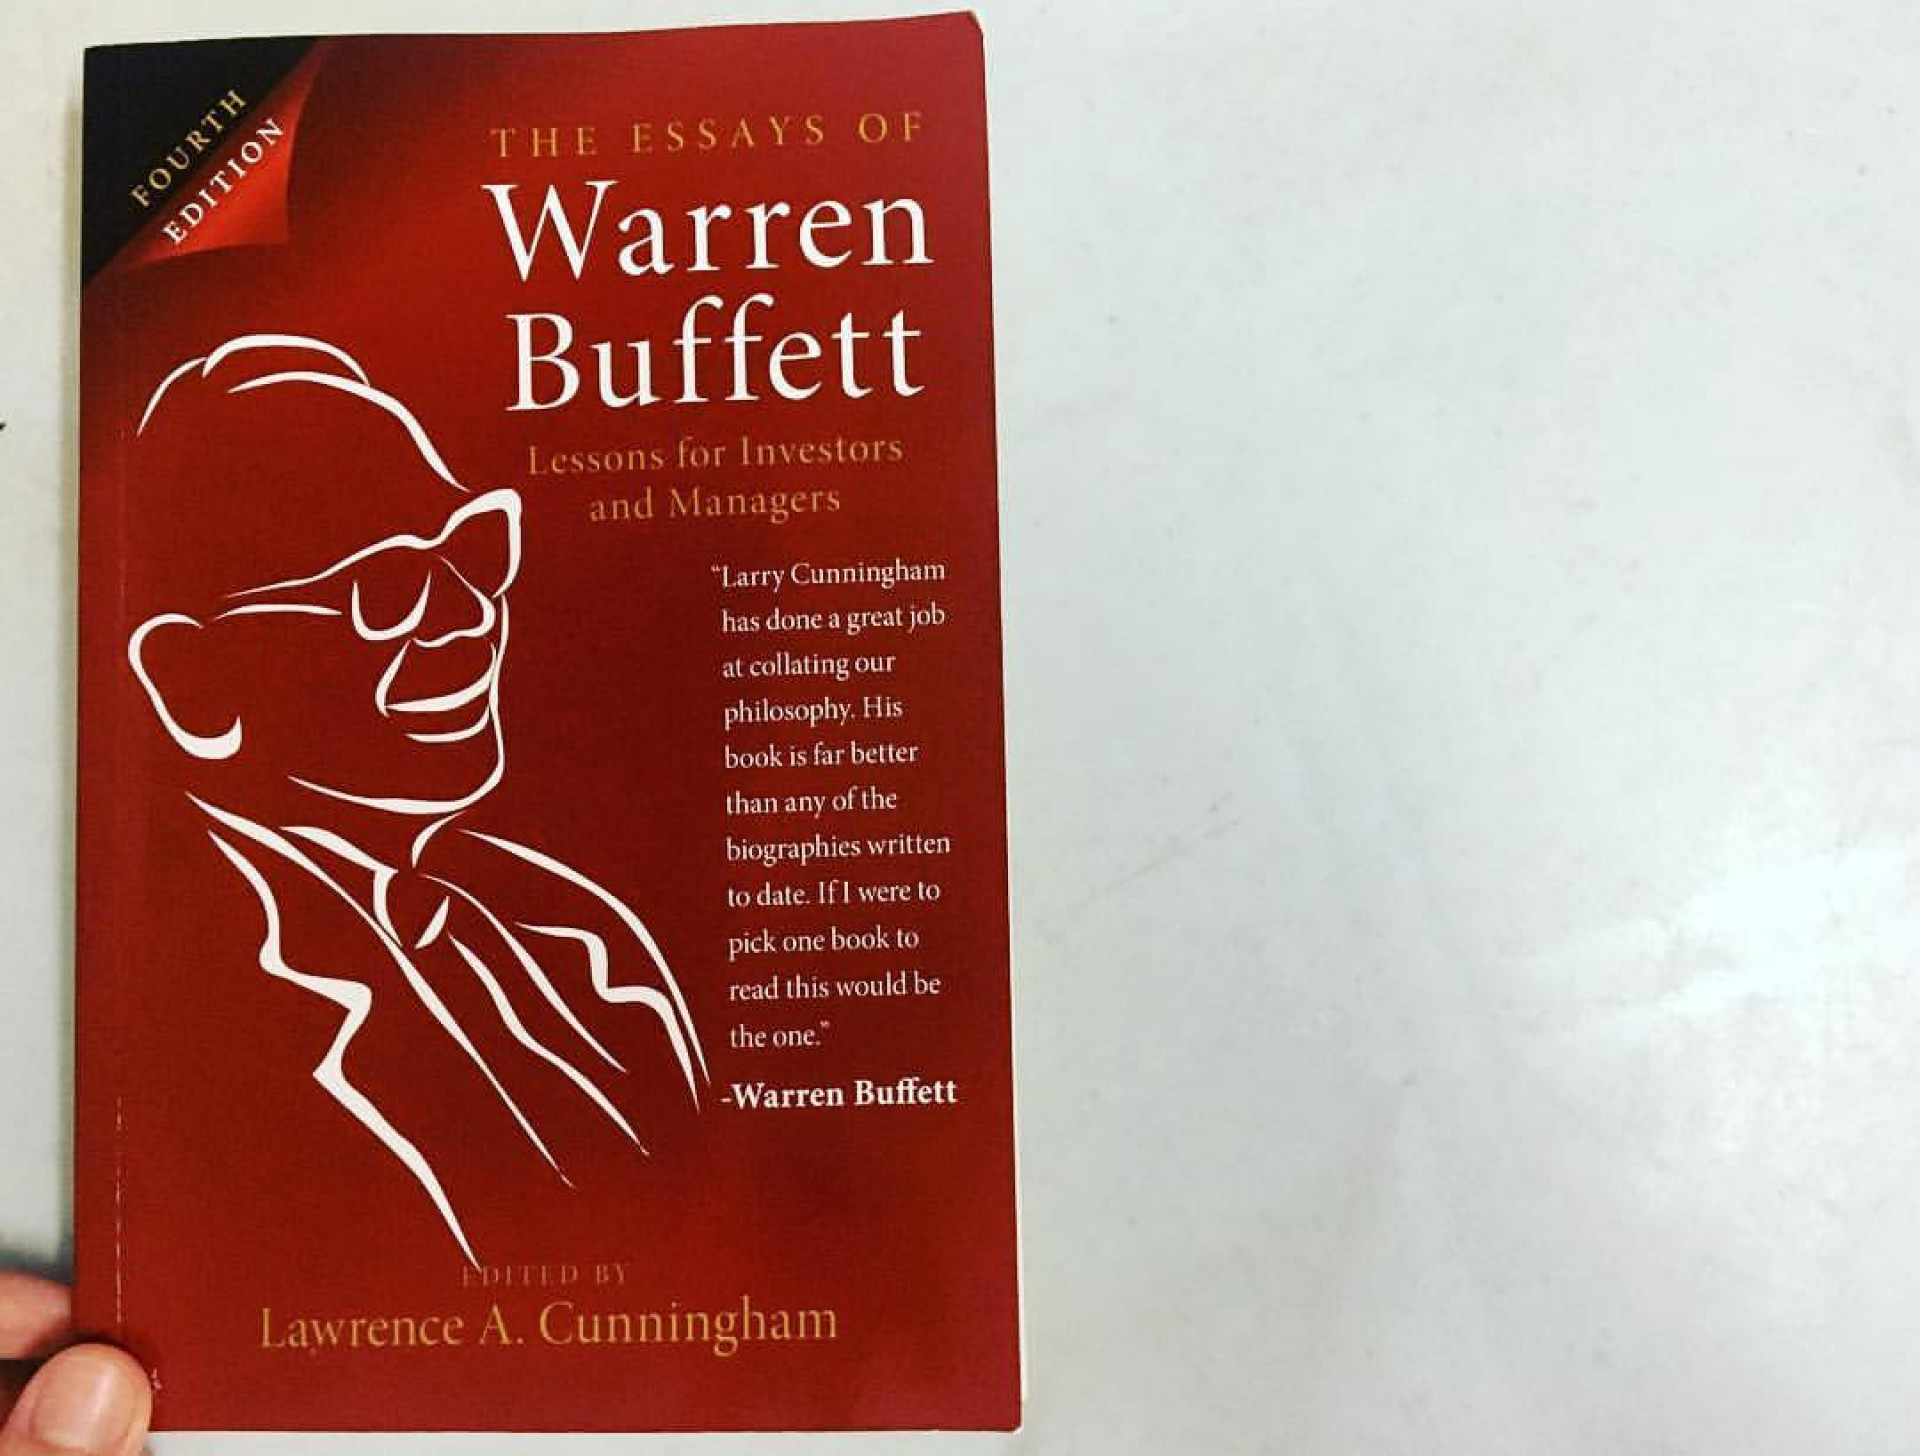 002 Essay Example The Essays Of Warren Buffett Lessons For Investors And Managers Striking 4th Edition Free Pdf 1920